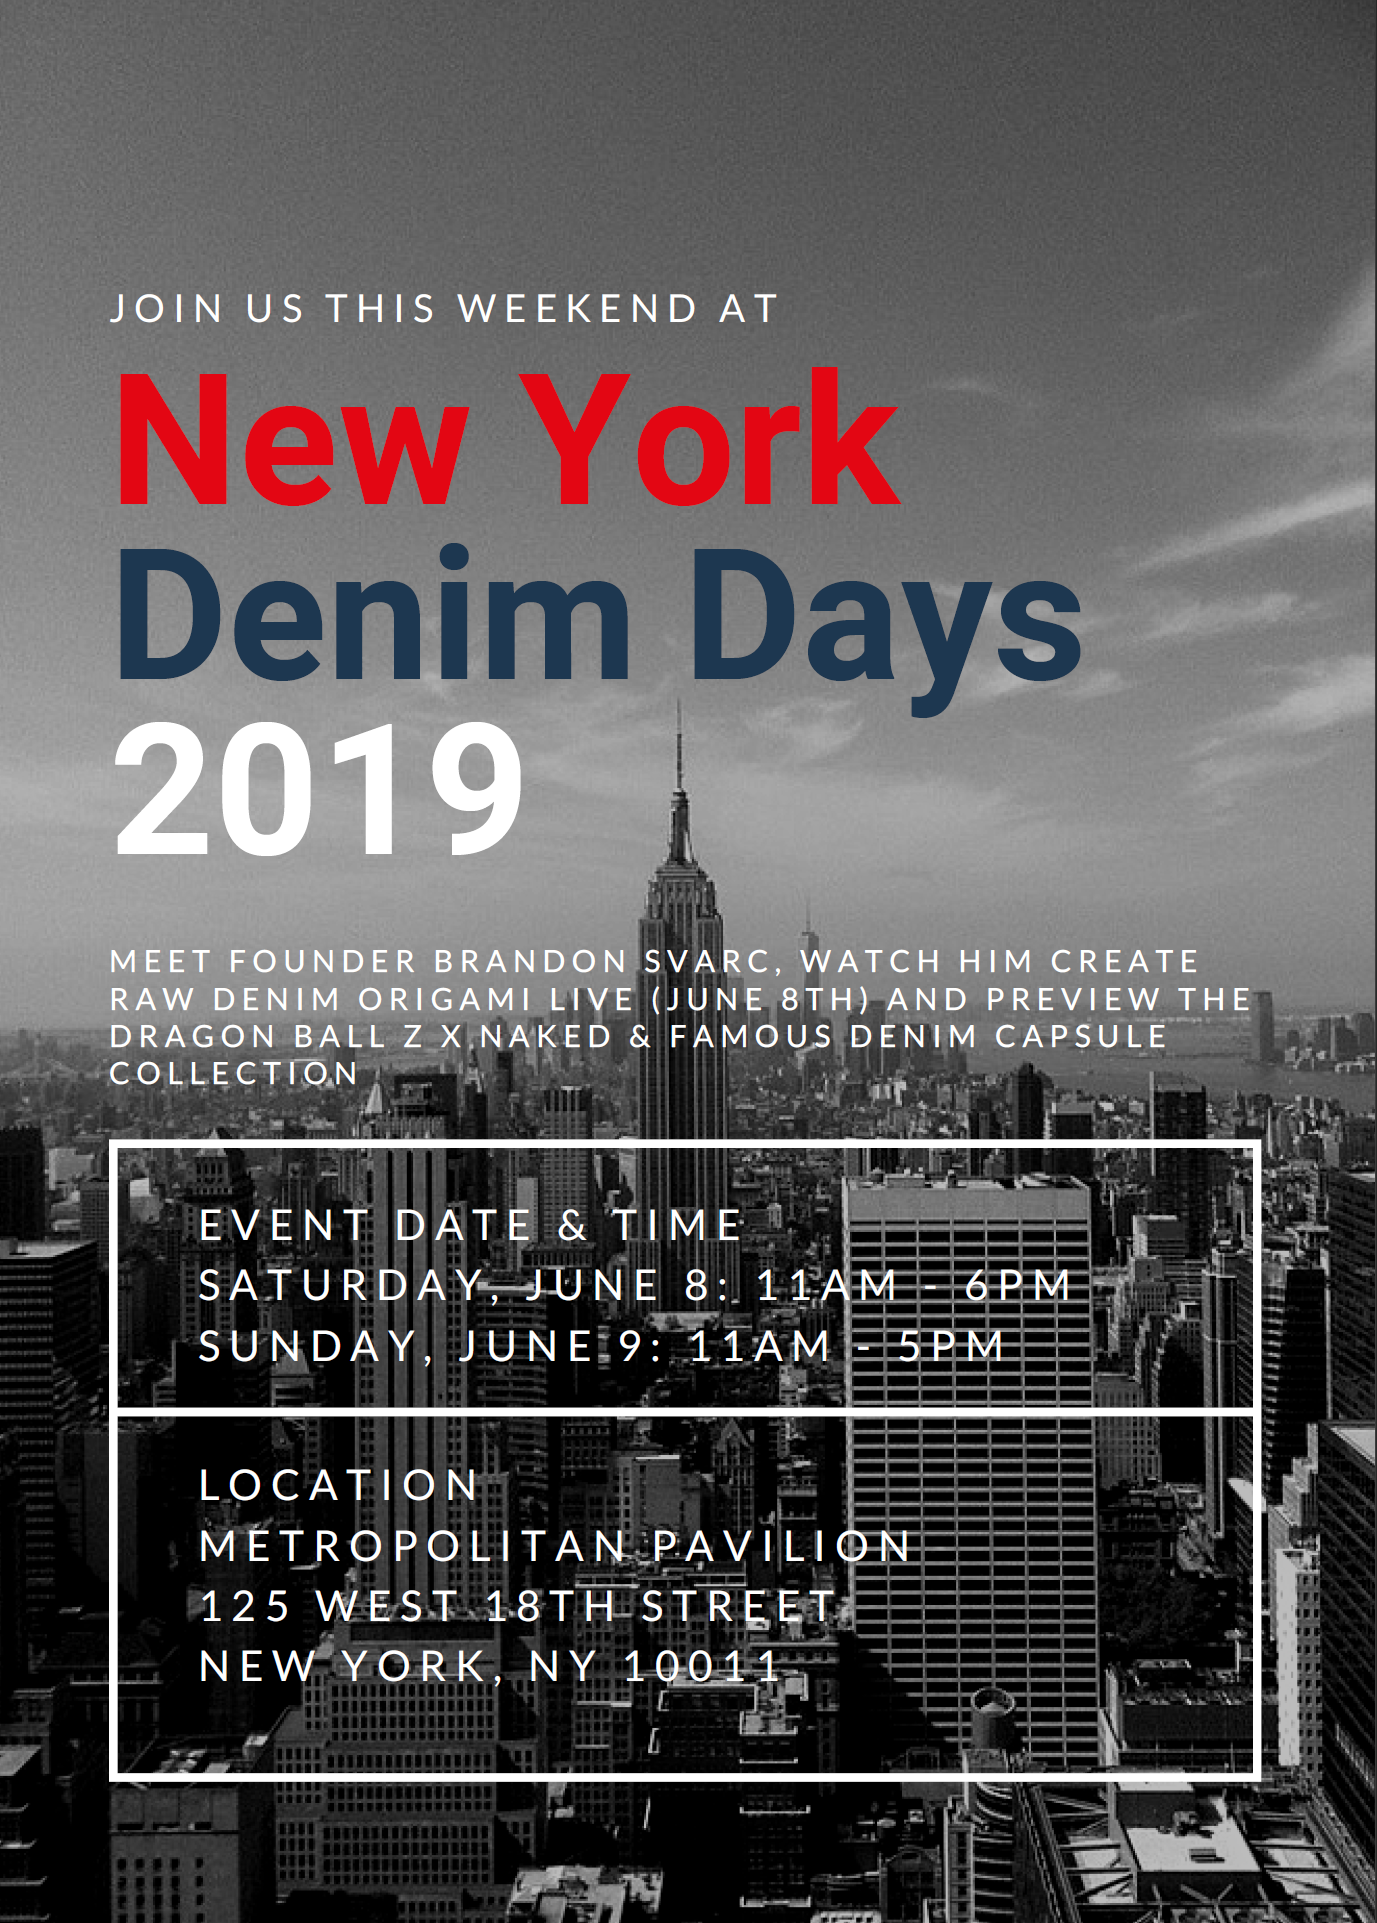 New York Denim Days 2019 Flyer